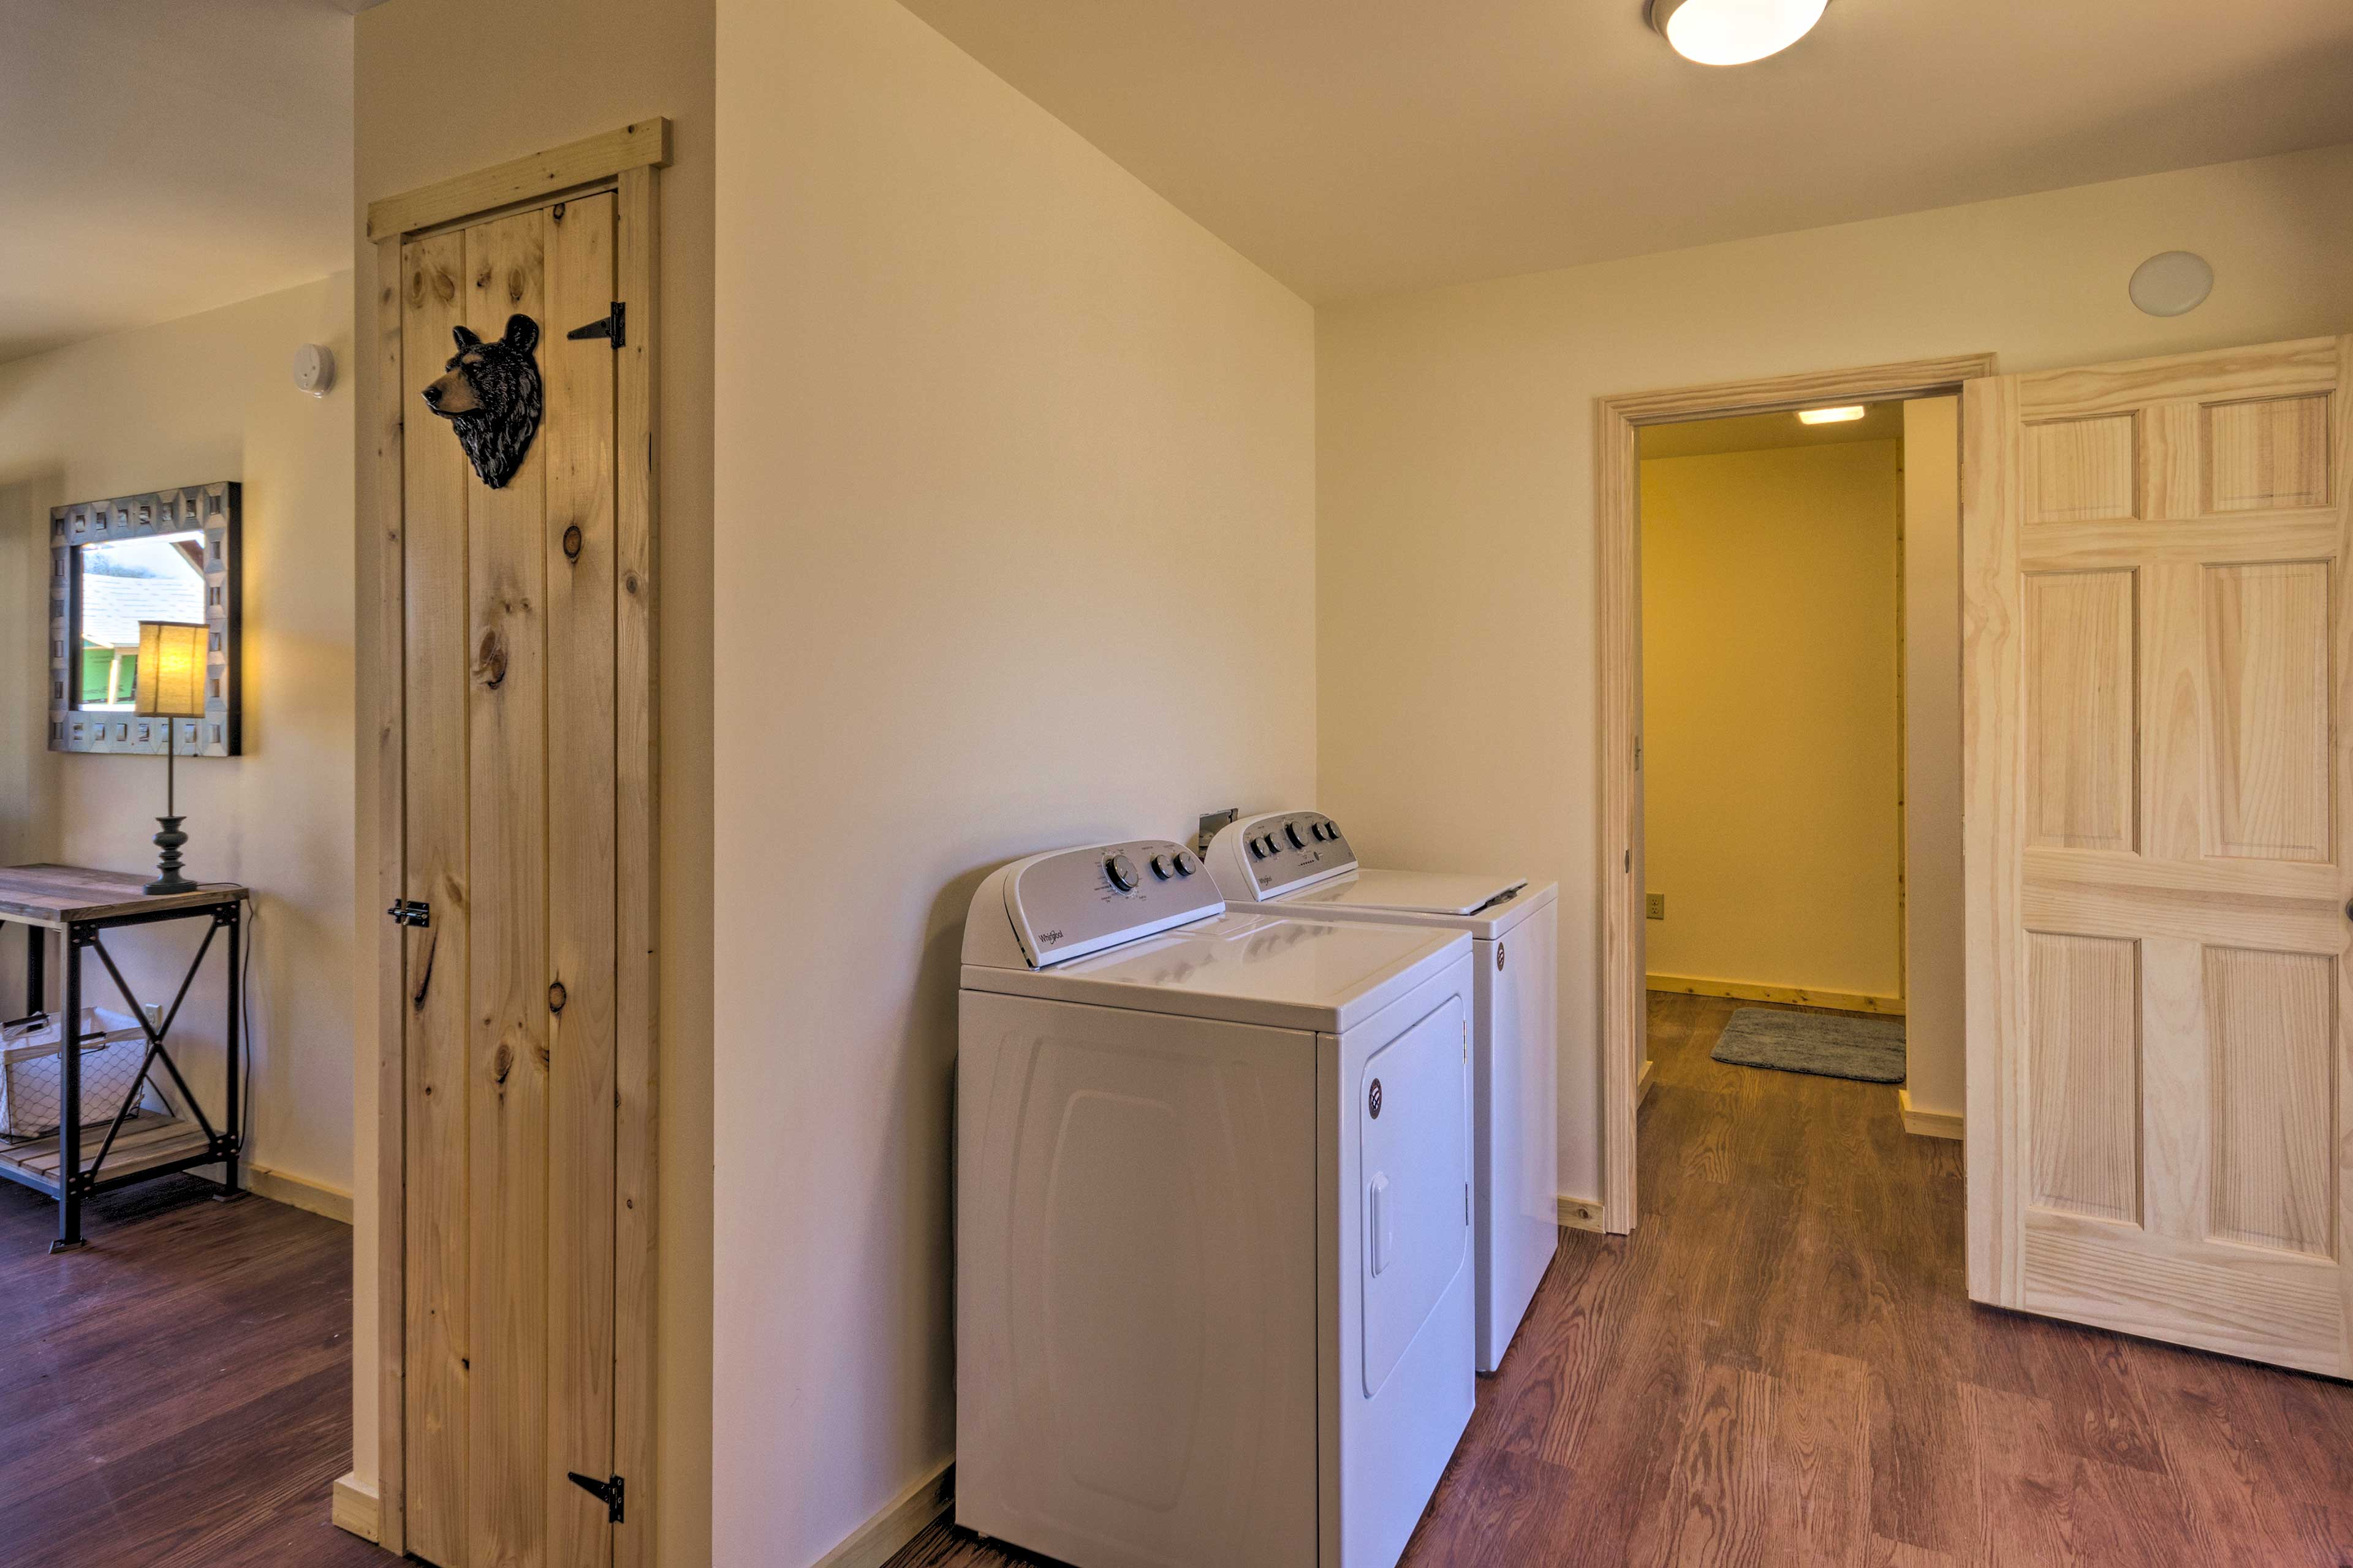 The cabin even boasts its own washer and dryer!